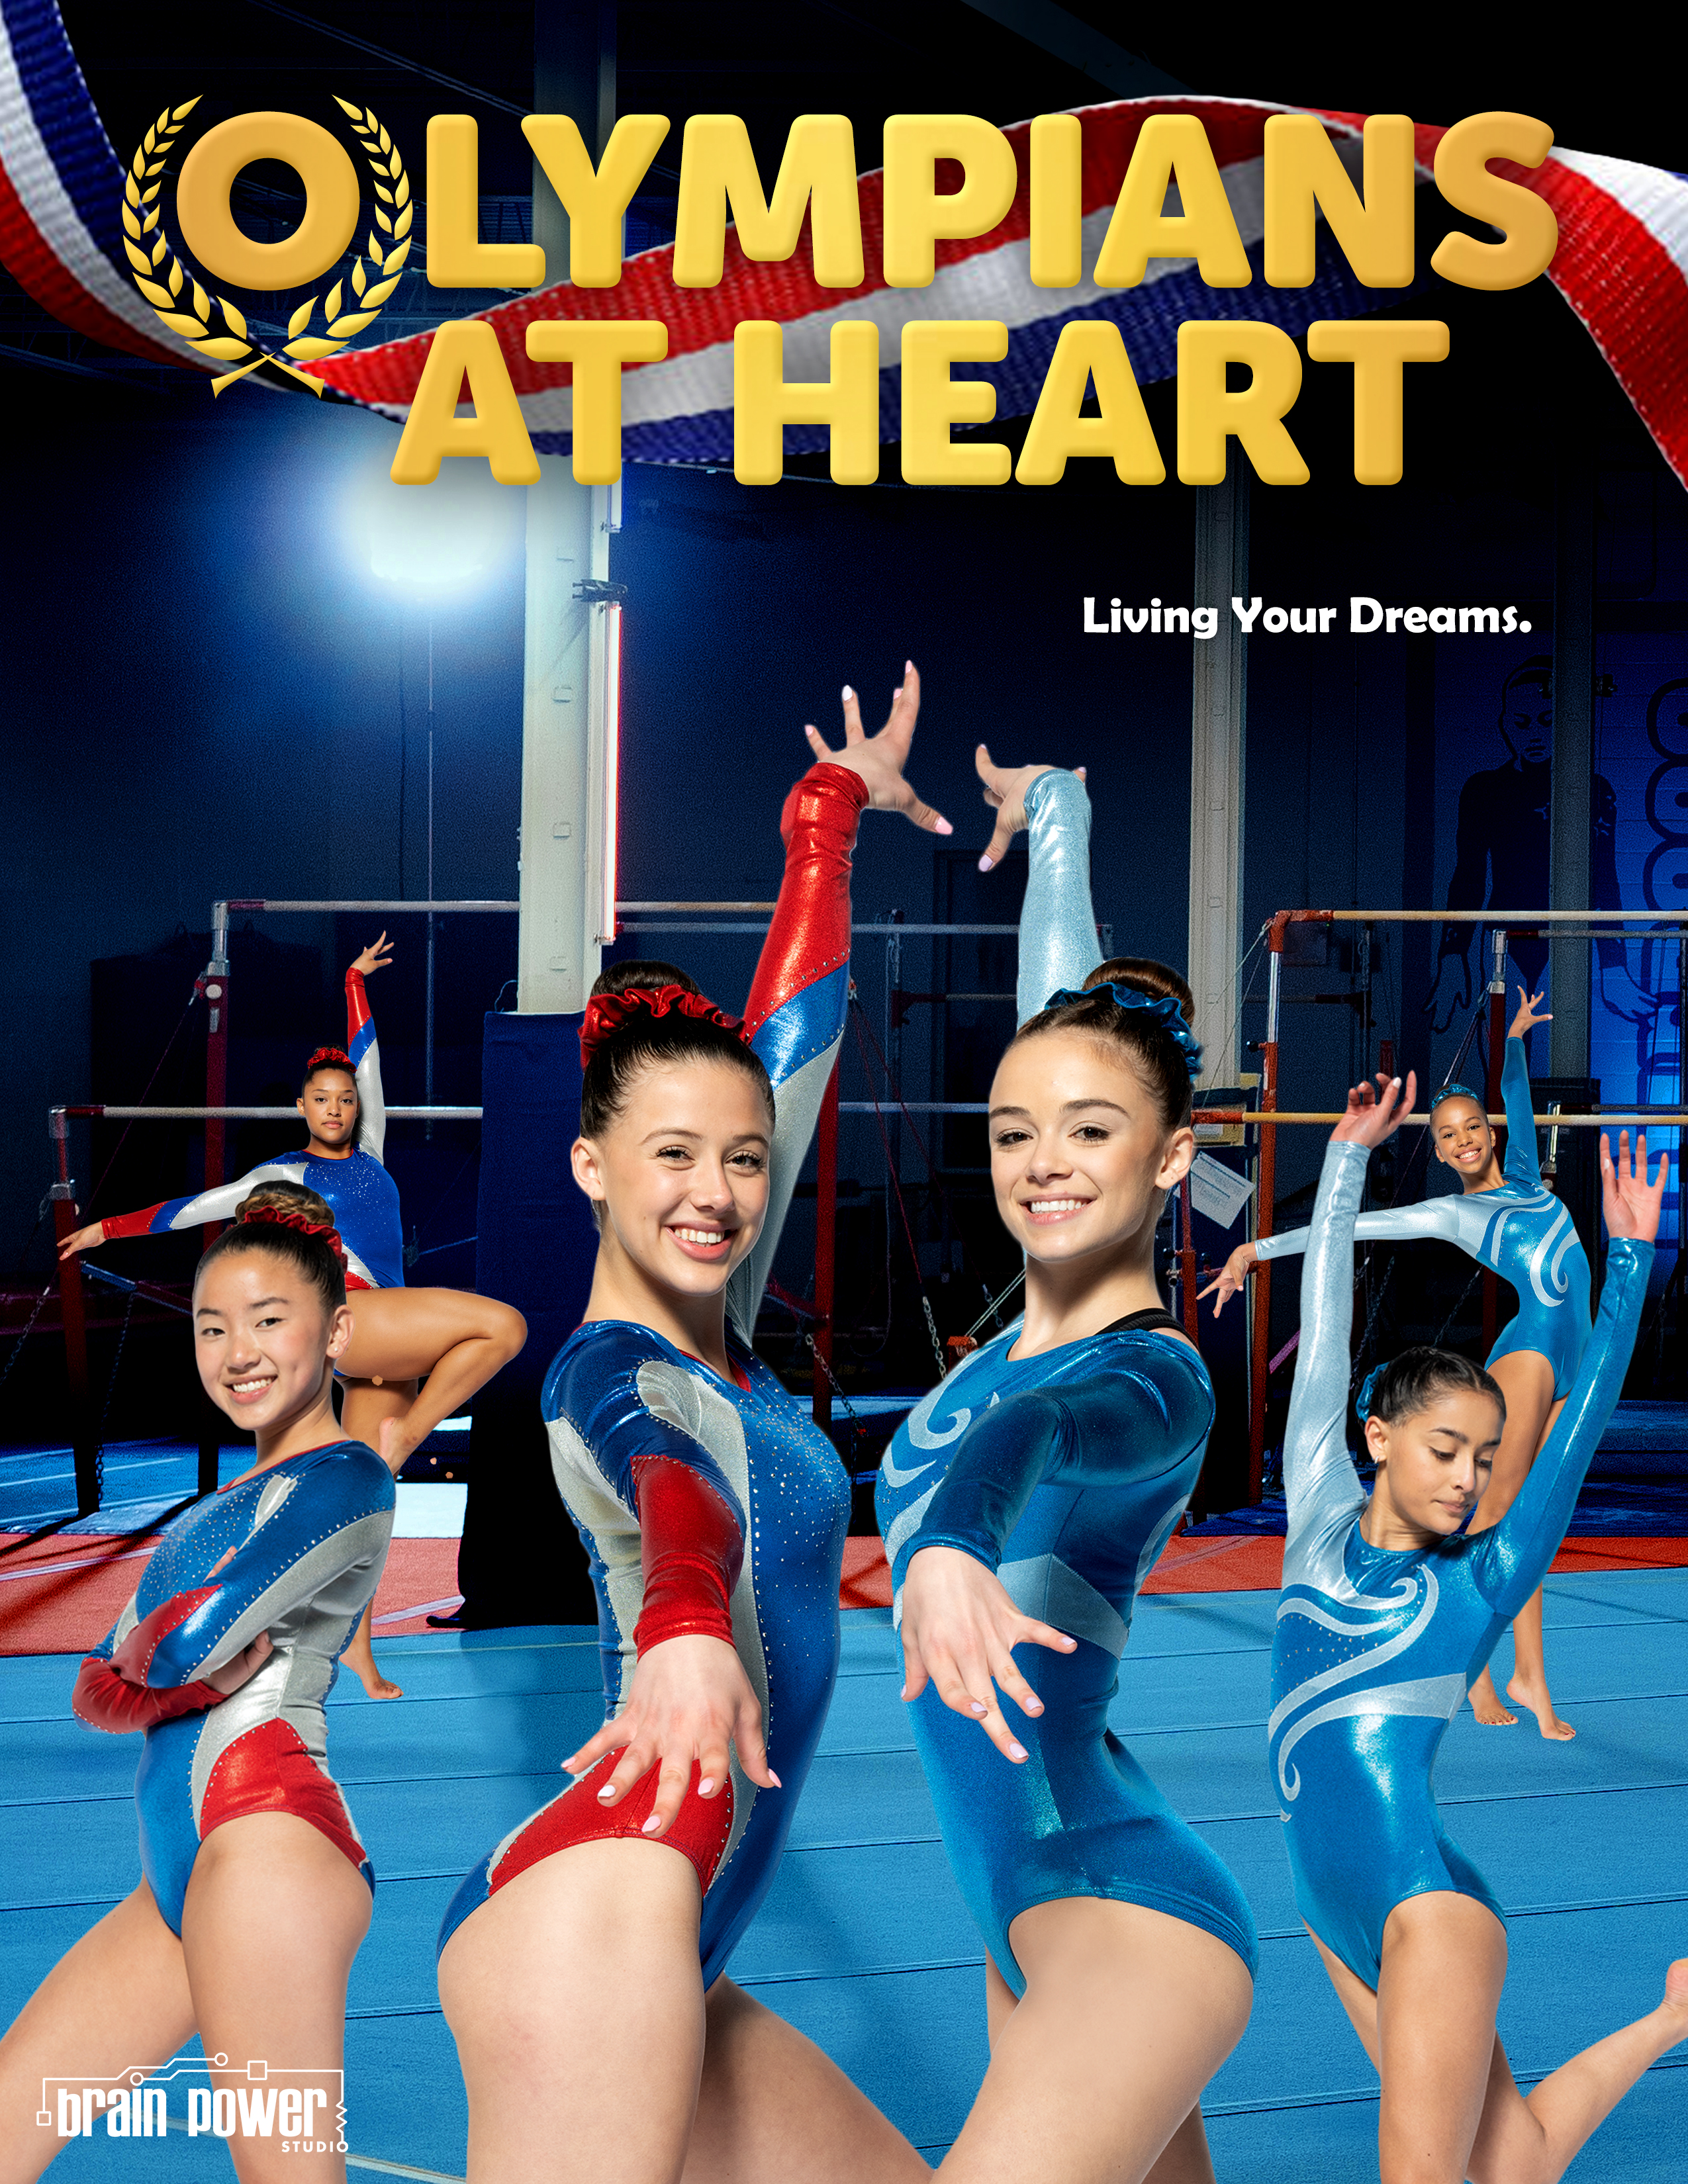 Olympians at Heart hd on soap2day